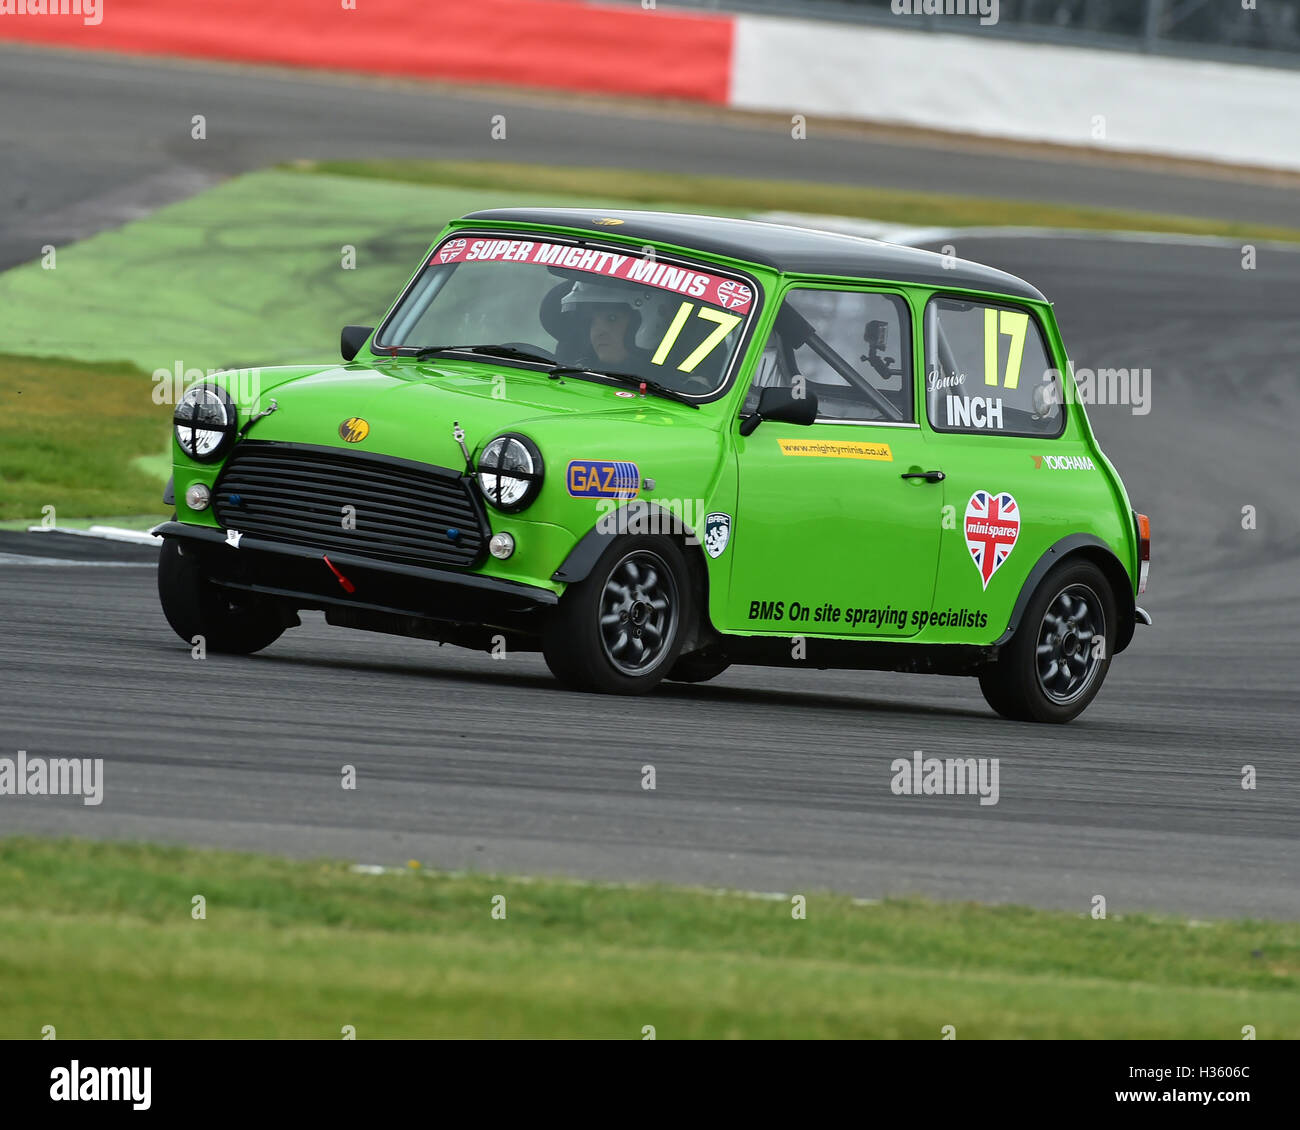 Louise Inch, Super Mighty Mini, 1293, Mighty Mini Championship, Saturday, Silverstone, Silverstone truck festival, - Stock Image